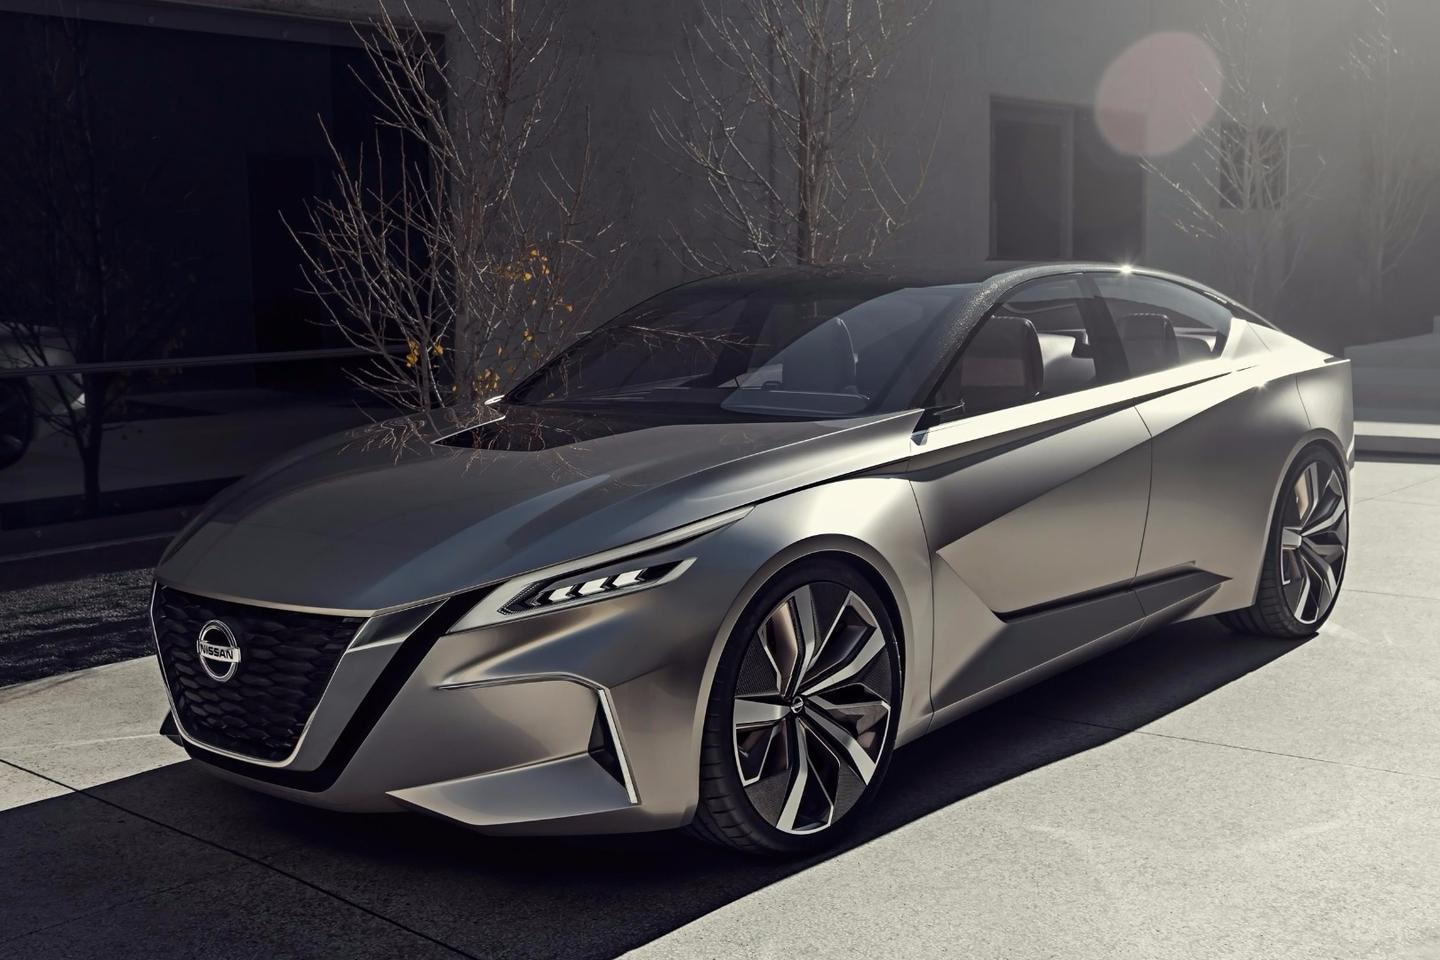 Nissan just debuted a new design for its flagship sedan, the Maxima, so we are not sure when this new design language shown in the Vmotion 2.0 would begin to proliferate